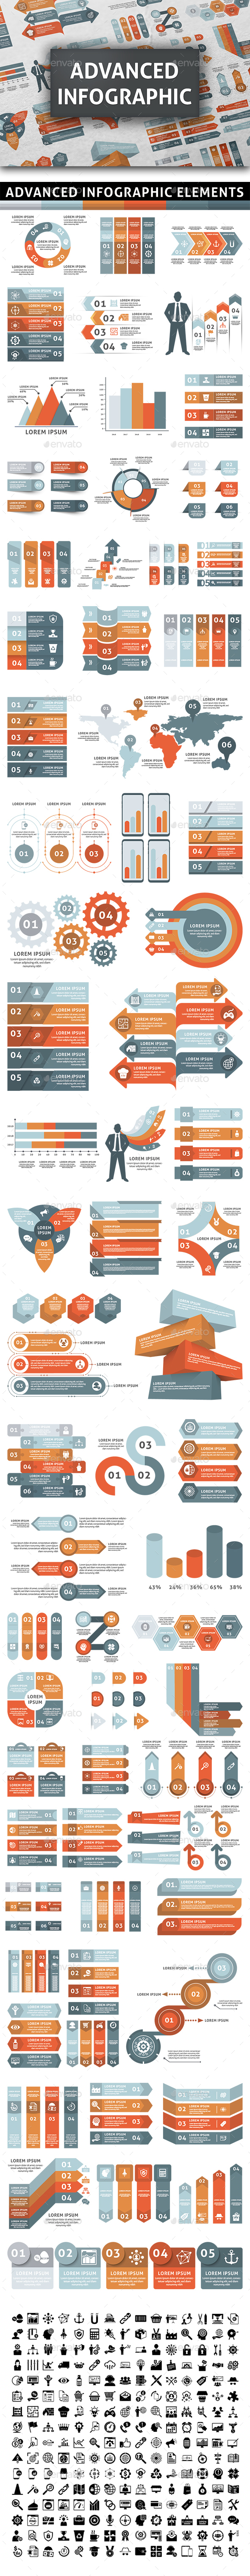 GraphicRiver Advanced Infographic Elements 20958040